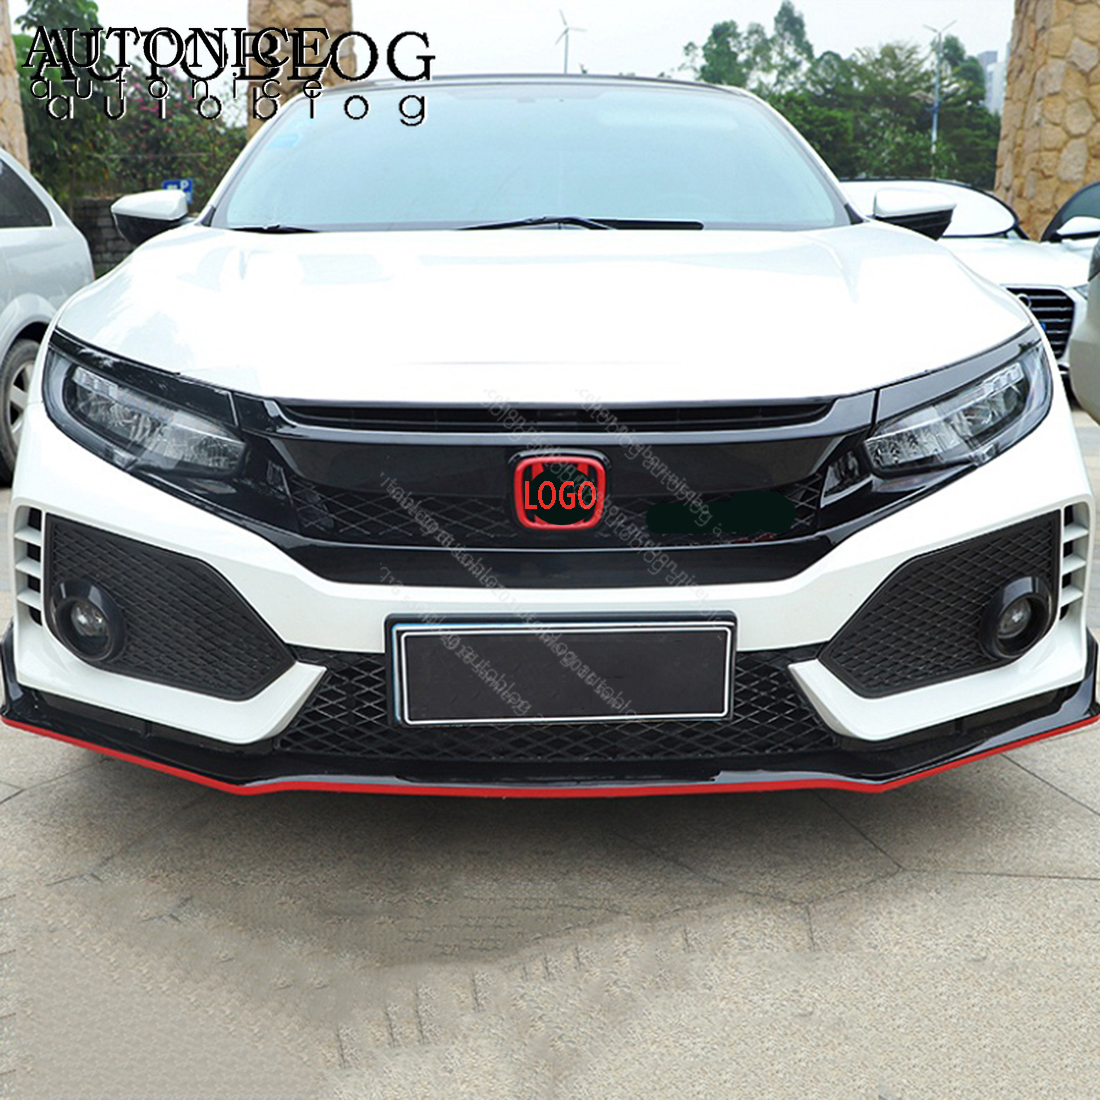 2pc RED  Front And Back Logo Badge Decoration Cover Trim Fit For Honda Civic Accessories2016 2017 2018 2019 ABS